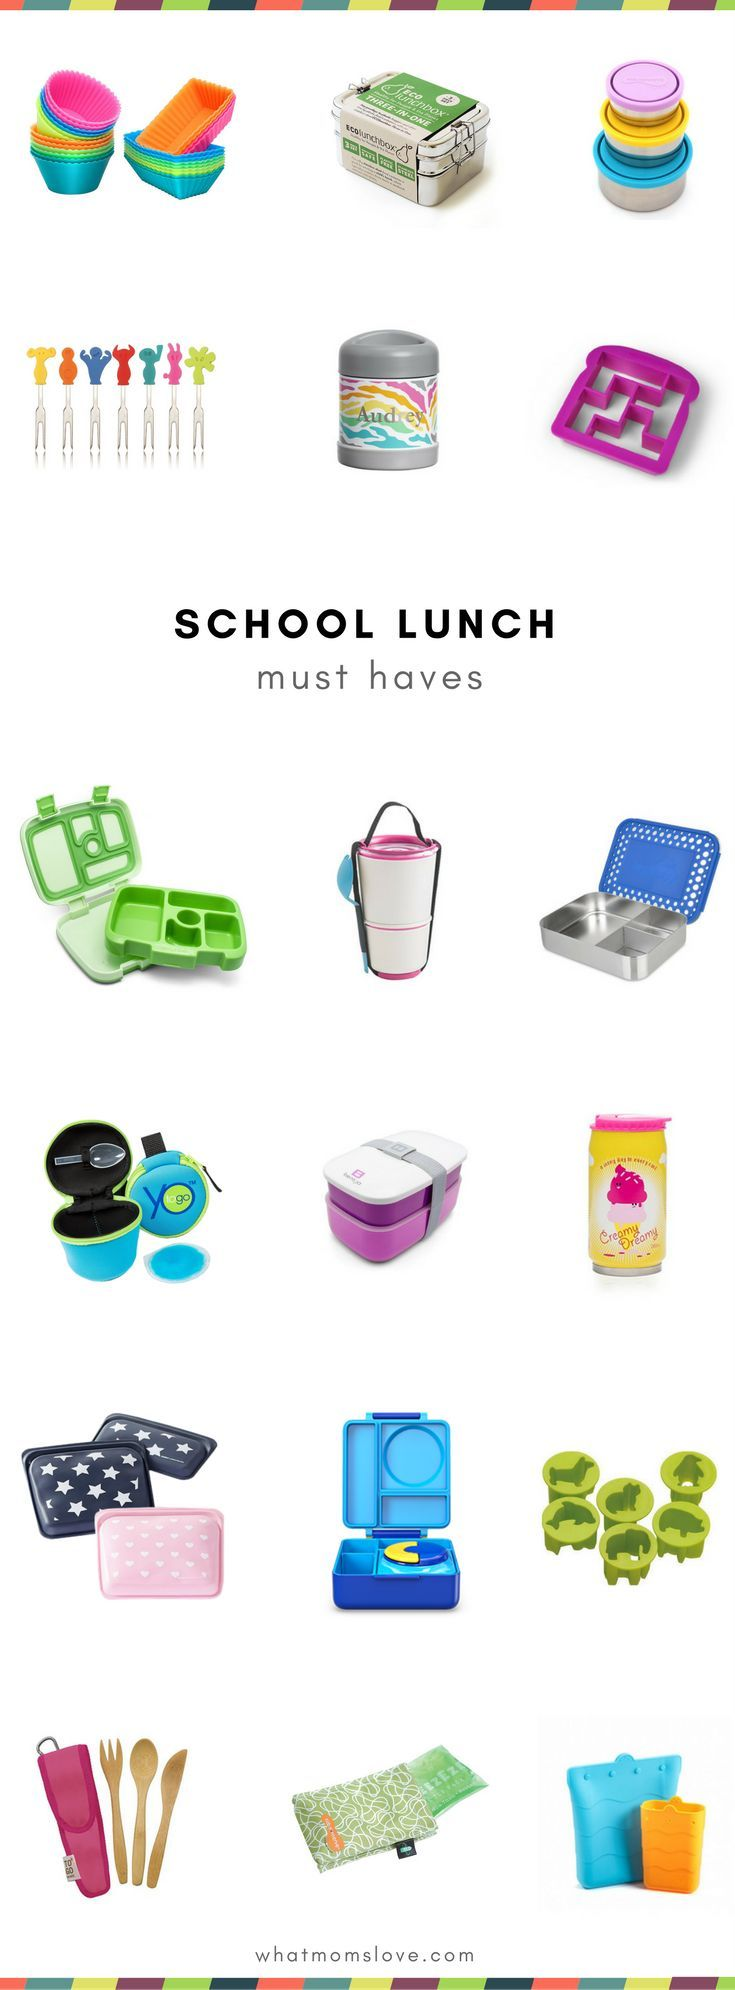 School Lunch Box containers, supplies and tools to pack a great school lunch for kids | Best bento boxes, water bottles, thermos, reusable stainless steel containers and more! | Part of the best Back to School Guide on the planet